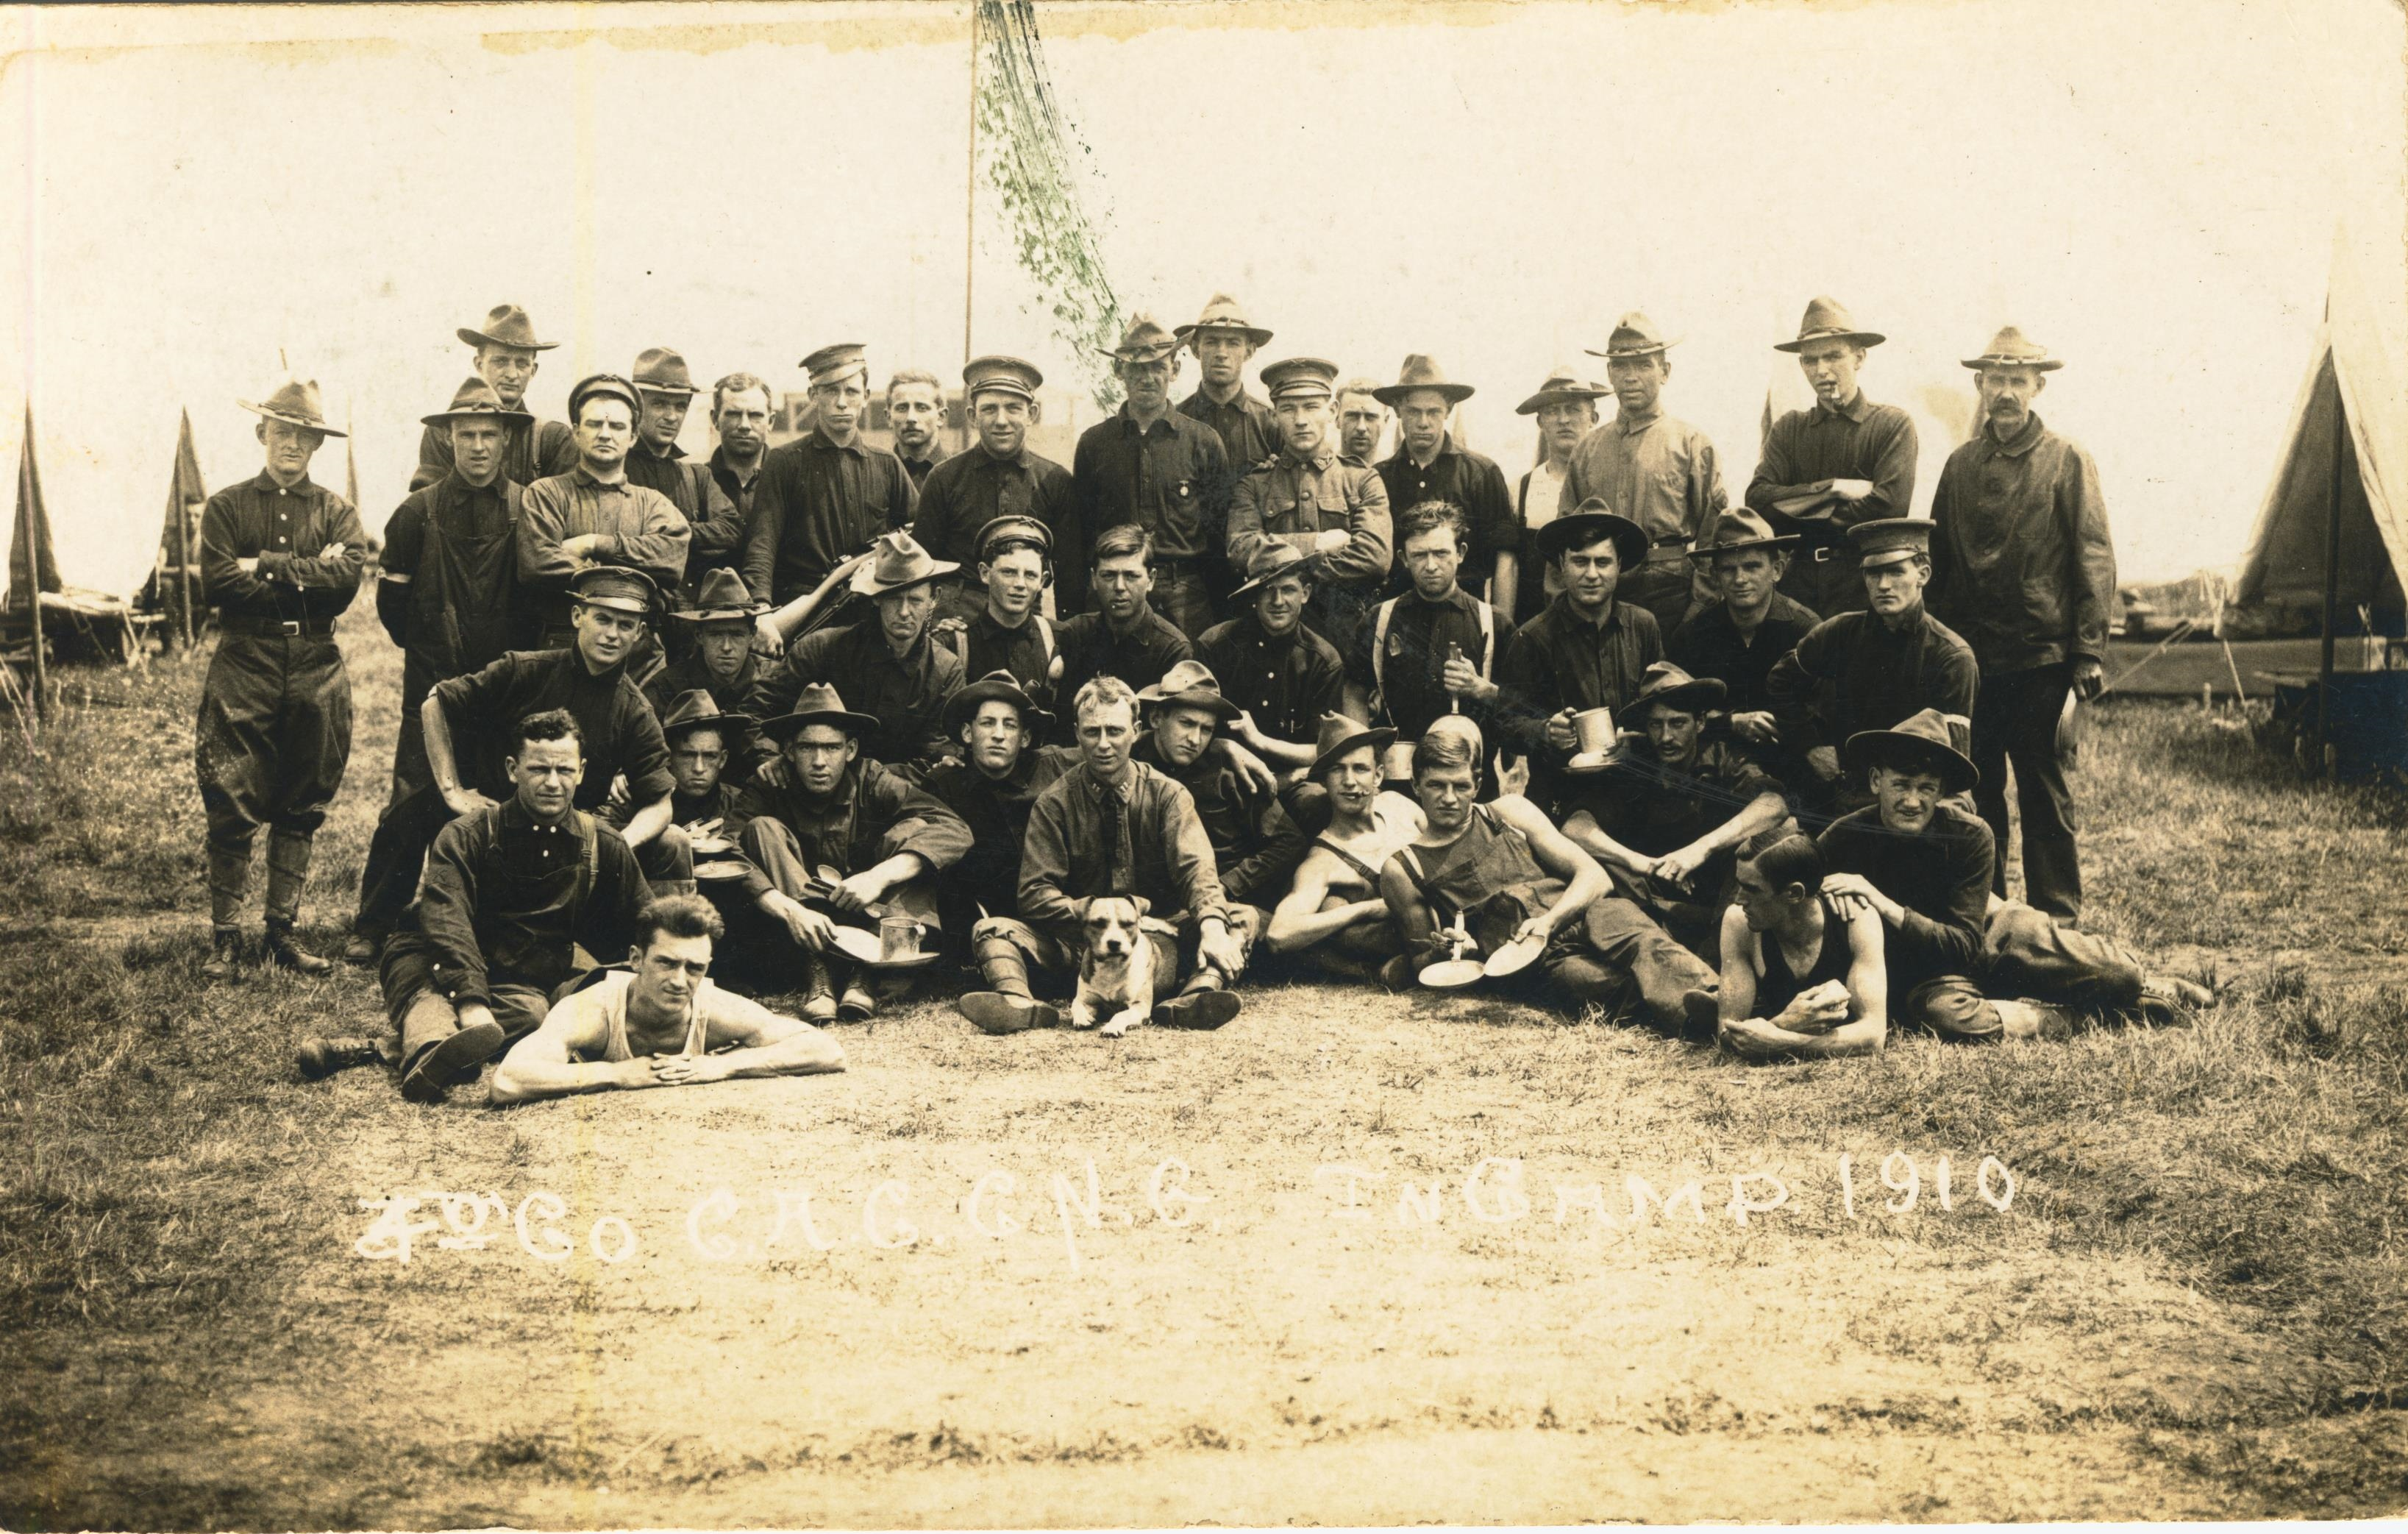 4th Co CAC C.N.G. in camp 1910